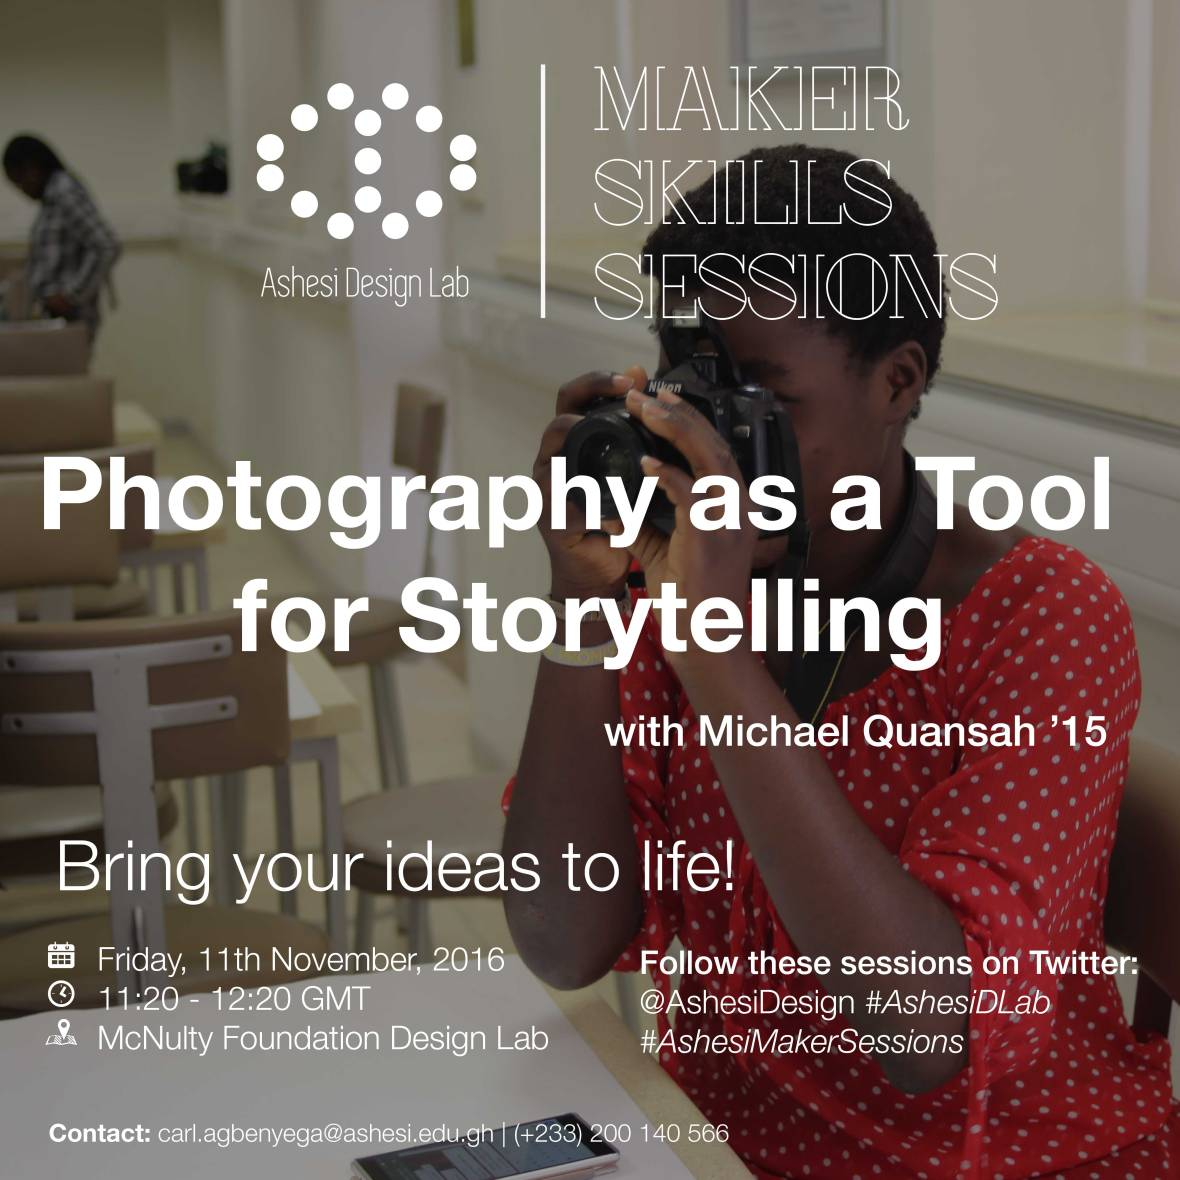 ashesi-dlab-maker-skills-sessions-storytelling-photography-01